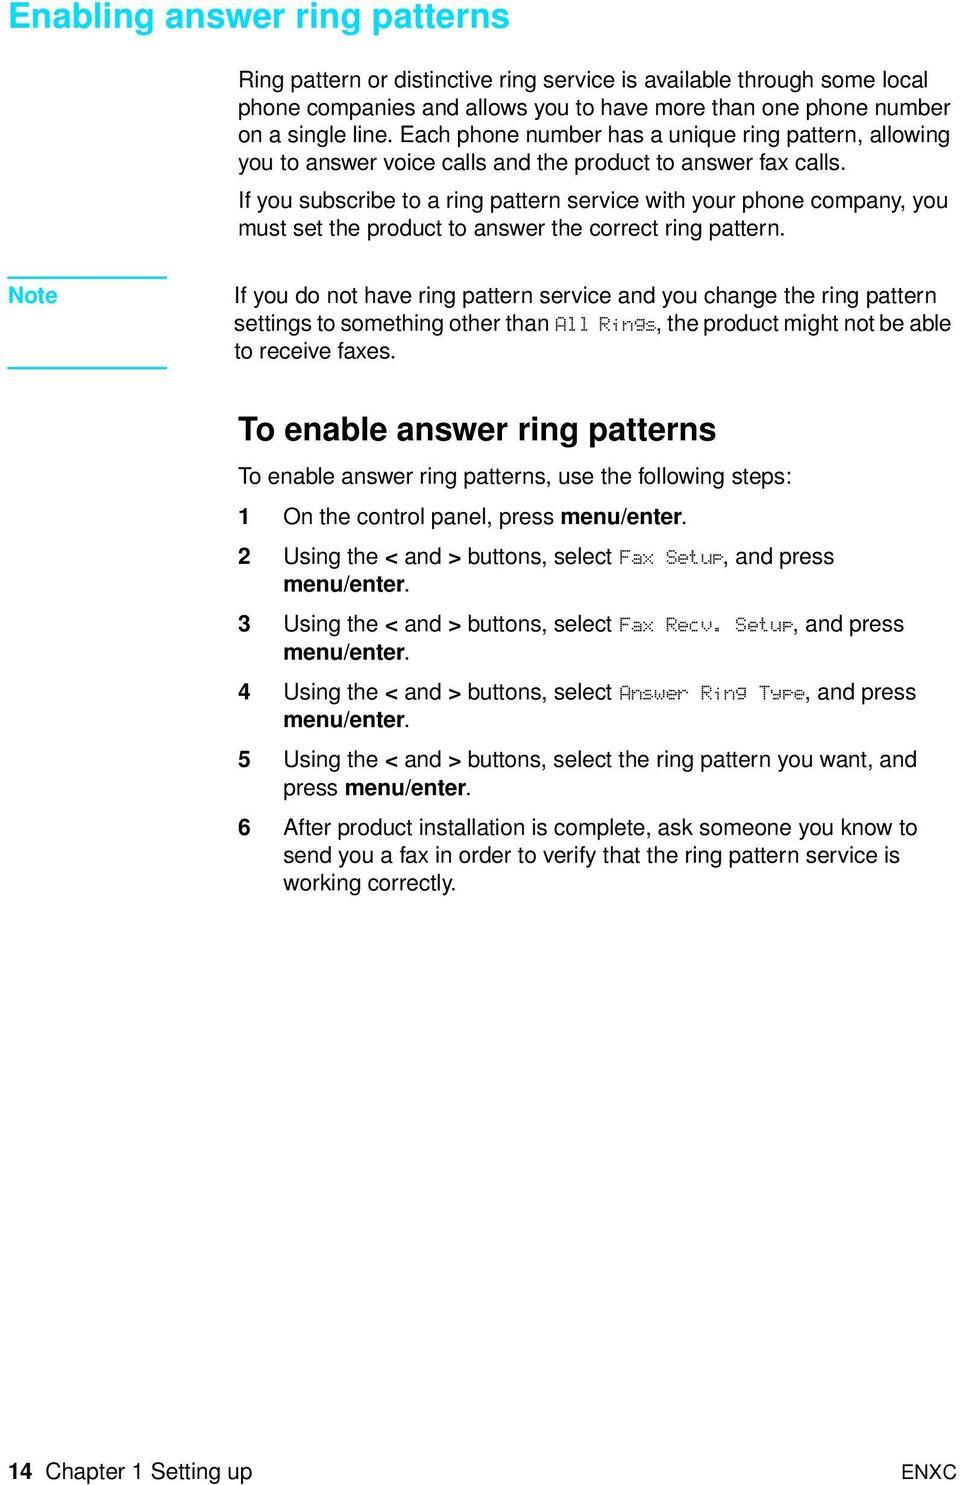 If you subscribe to a ring pattern service with your phone company, you must set the product to answer the correct ring pattern.